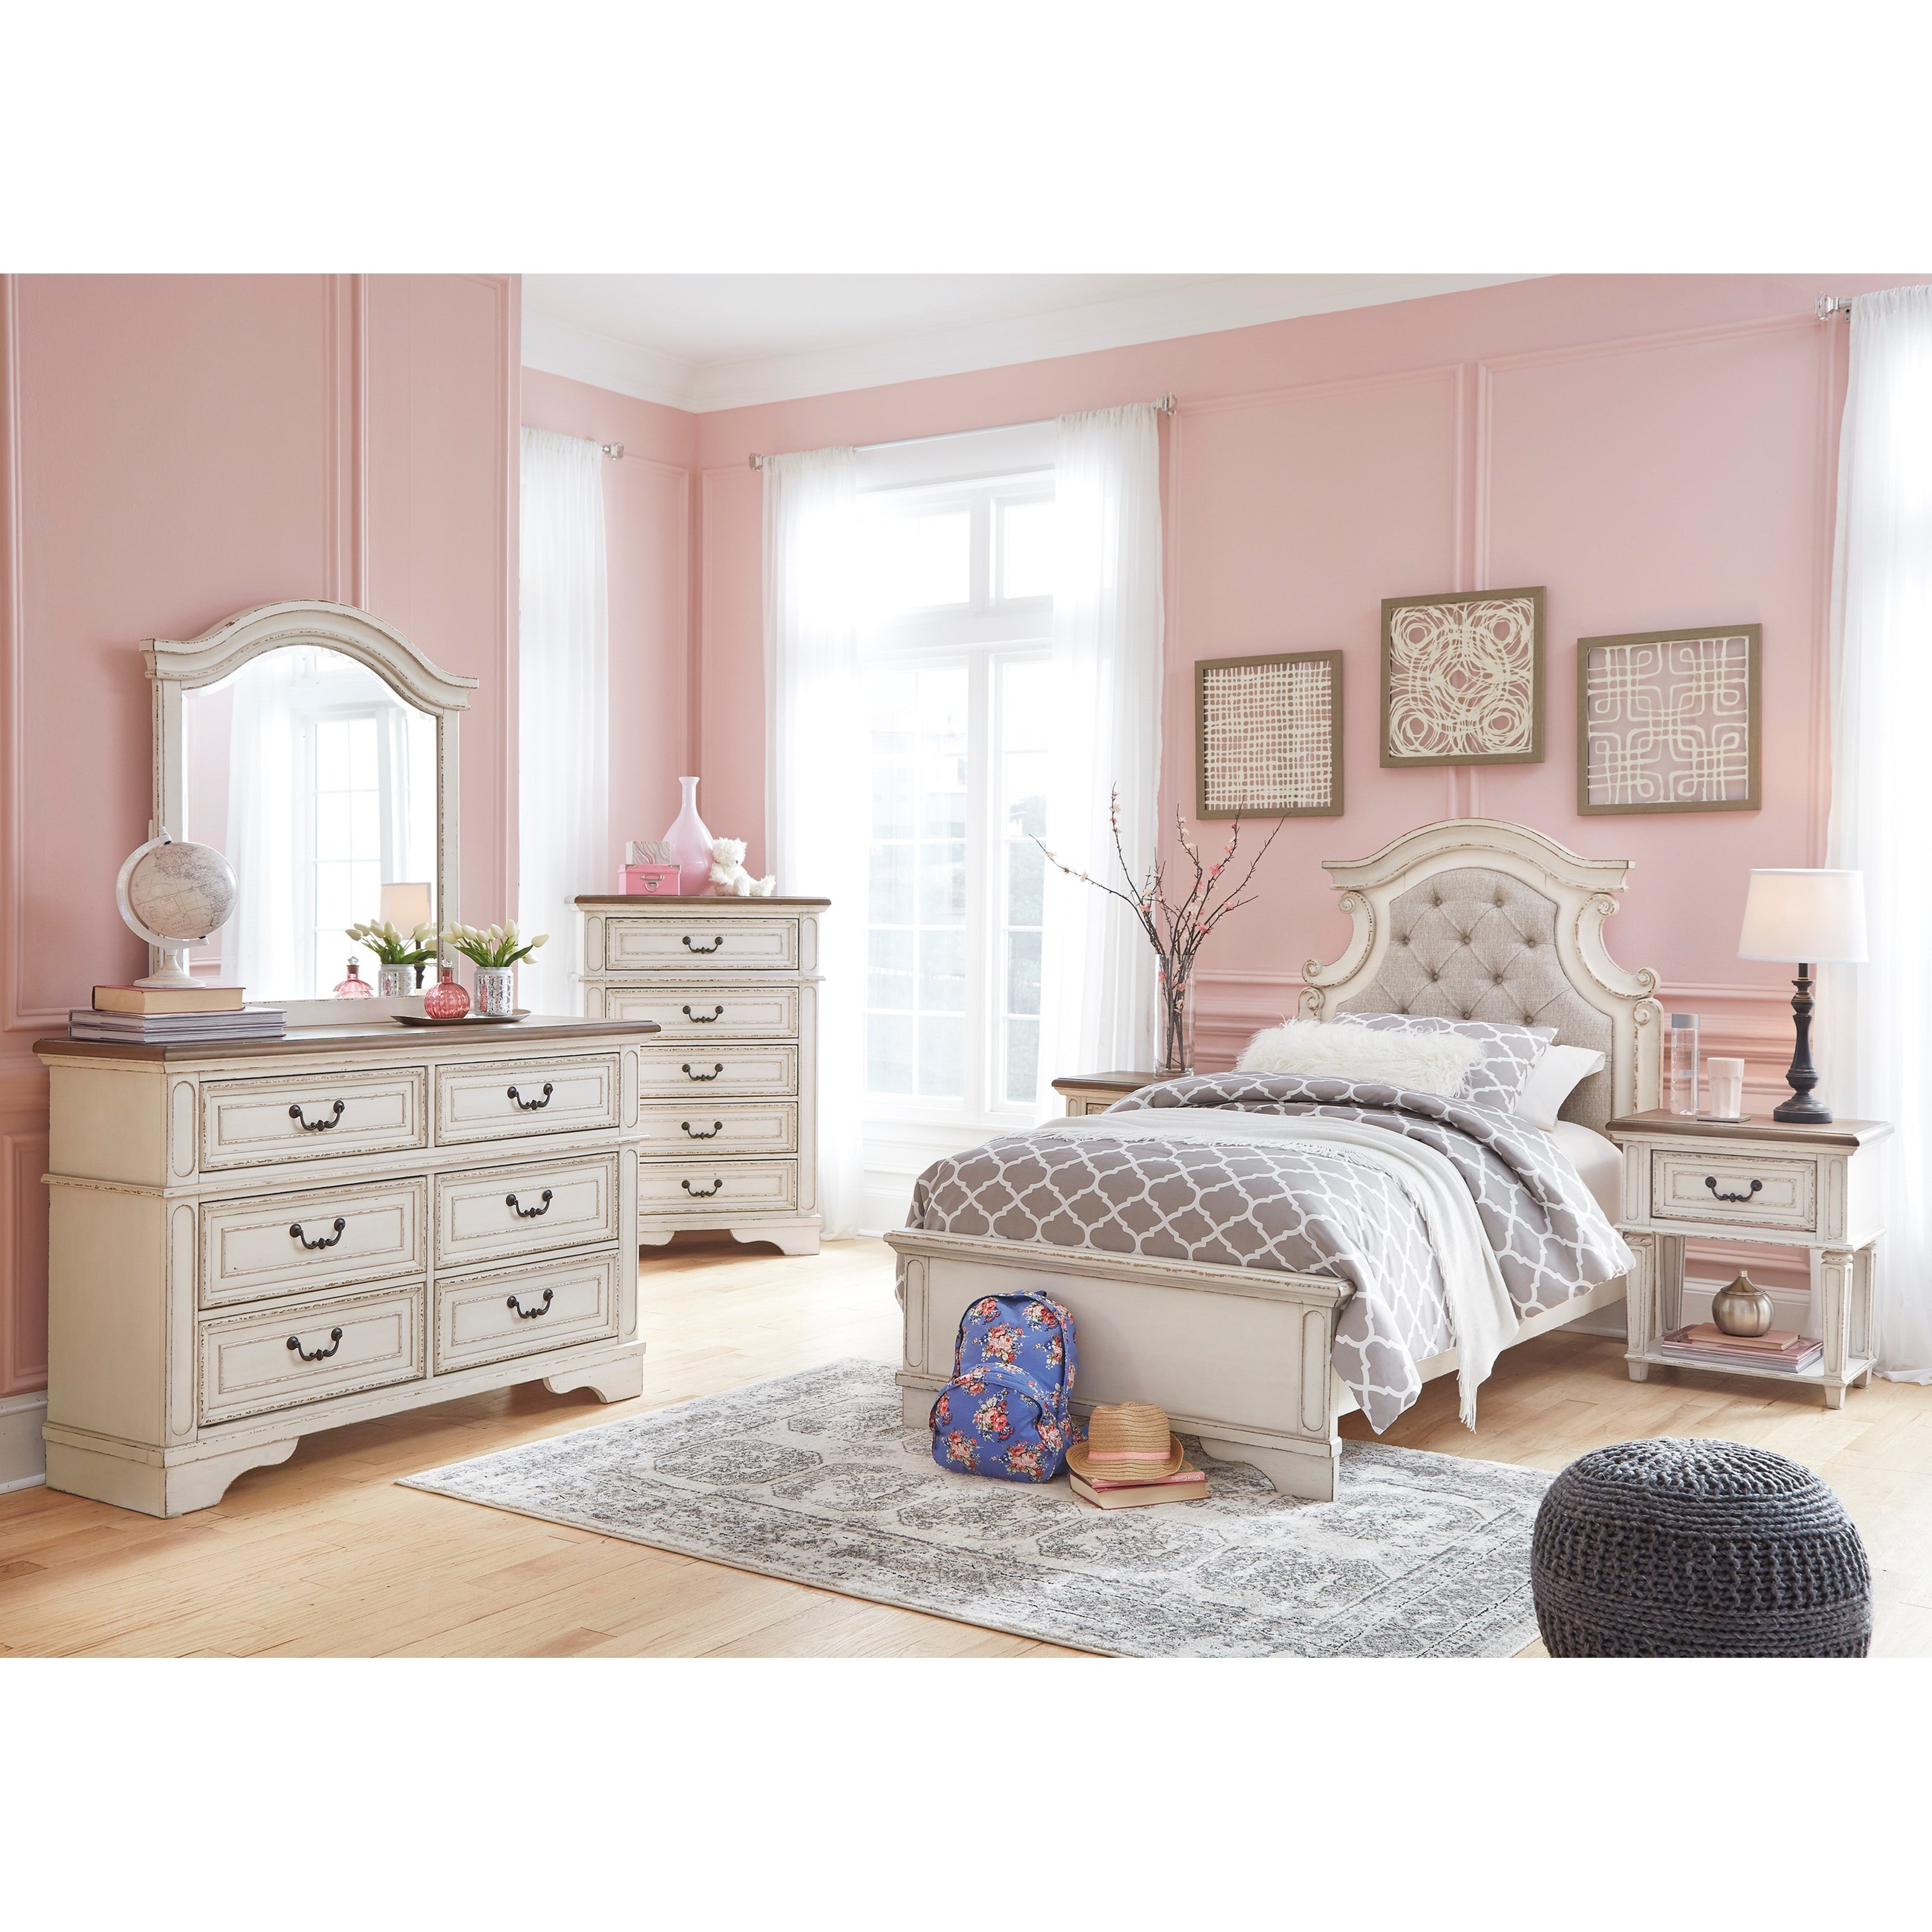 Signature Design By Ashley Realyn Twin Bedroom Group Houston S Yuma Furniture Bedroom Groups